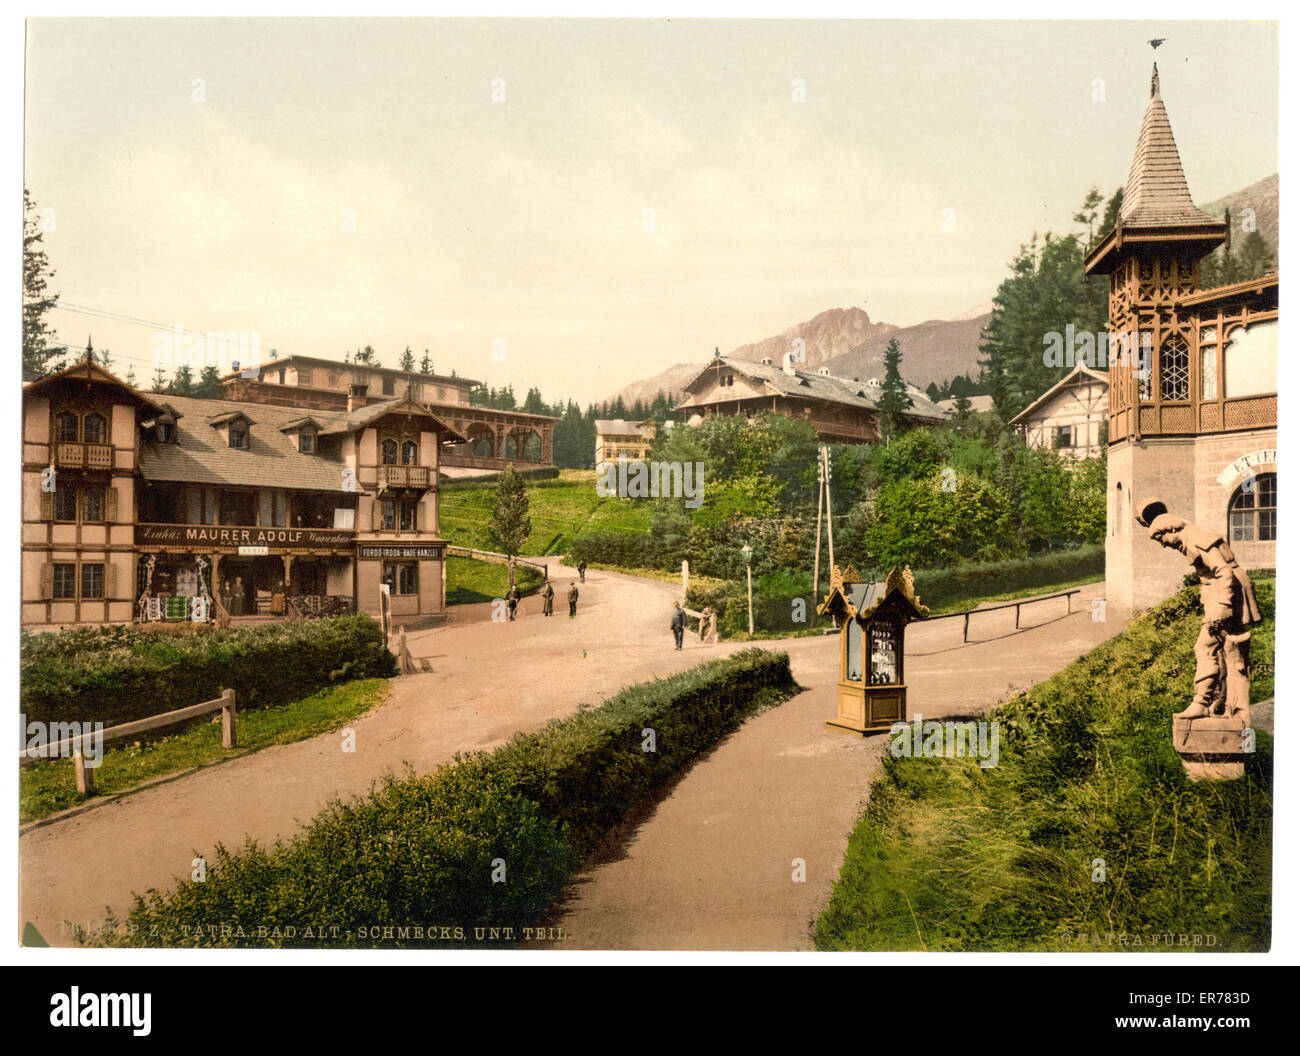 Bad Alt-Schmecks, lower part, Tatra, Austro-Hungary. Date between ca. 1890 and ca. 1900. - Stock Image